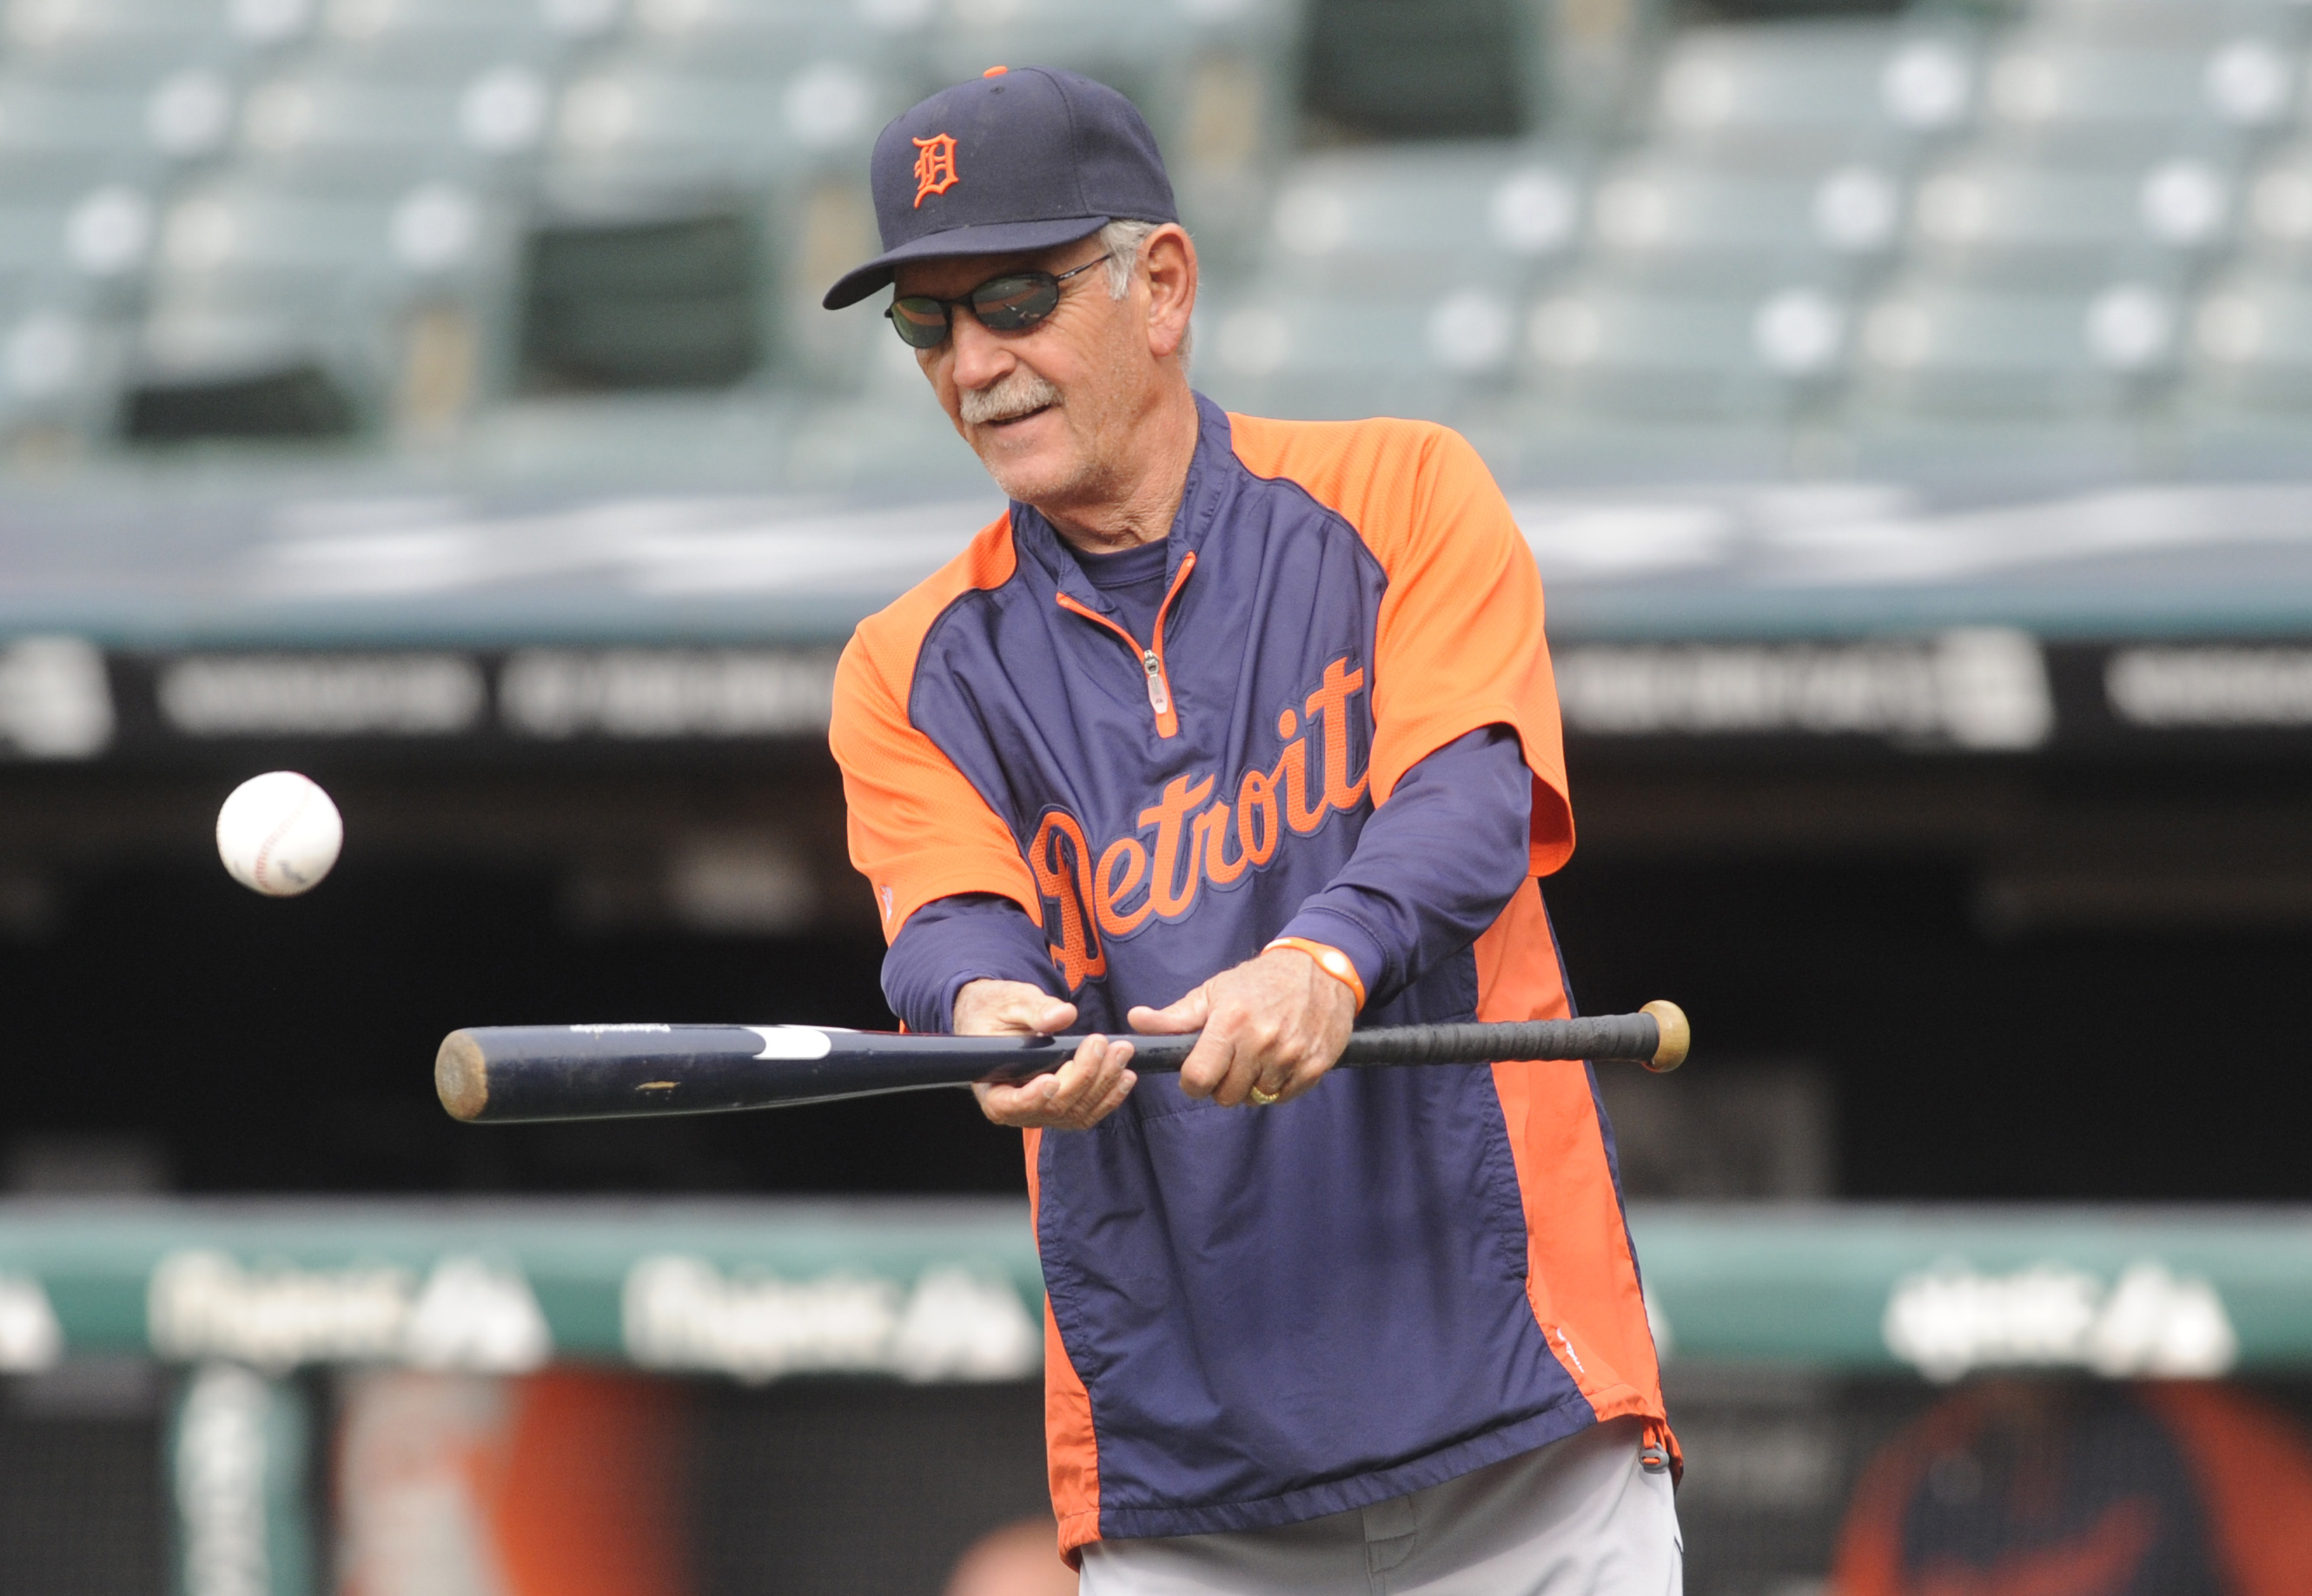 Tigers manager Jim Leyland said in spring training he has no plans to retire. (USA Today Sports)